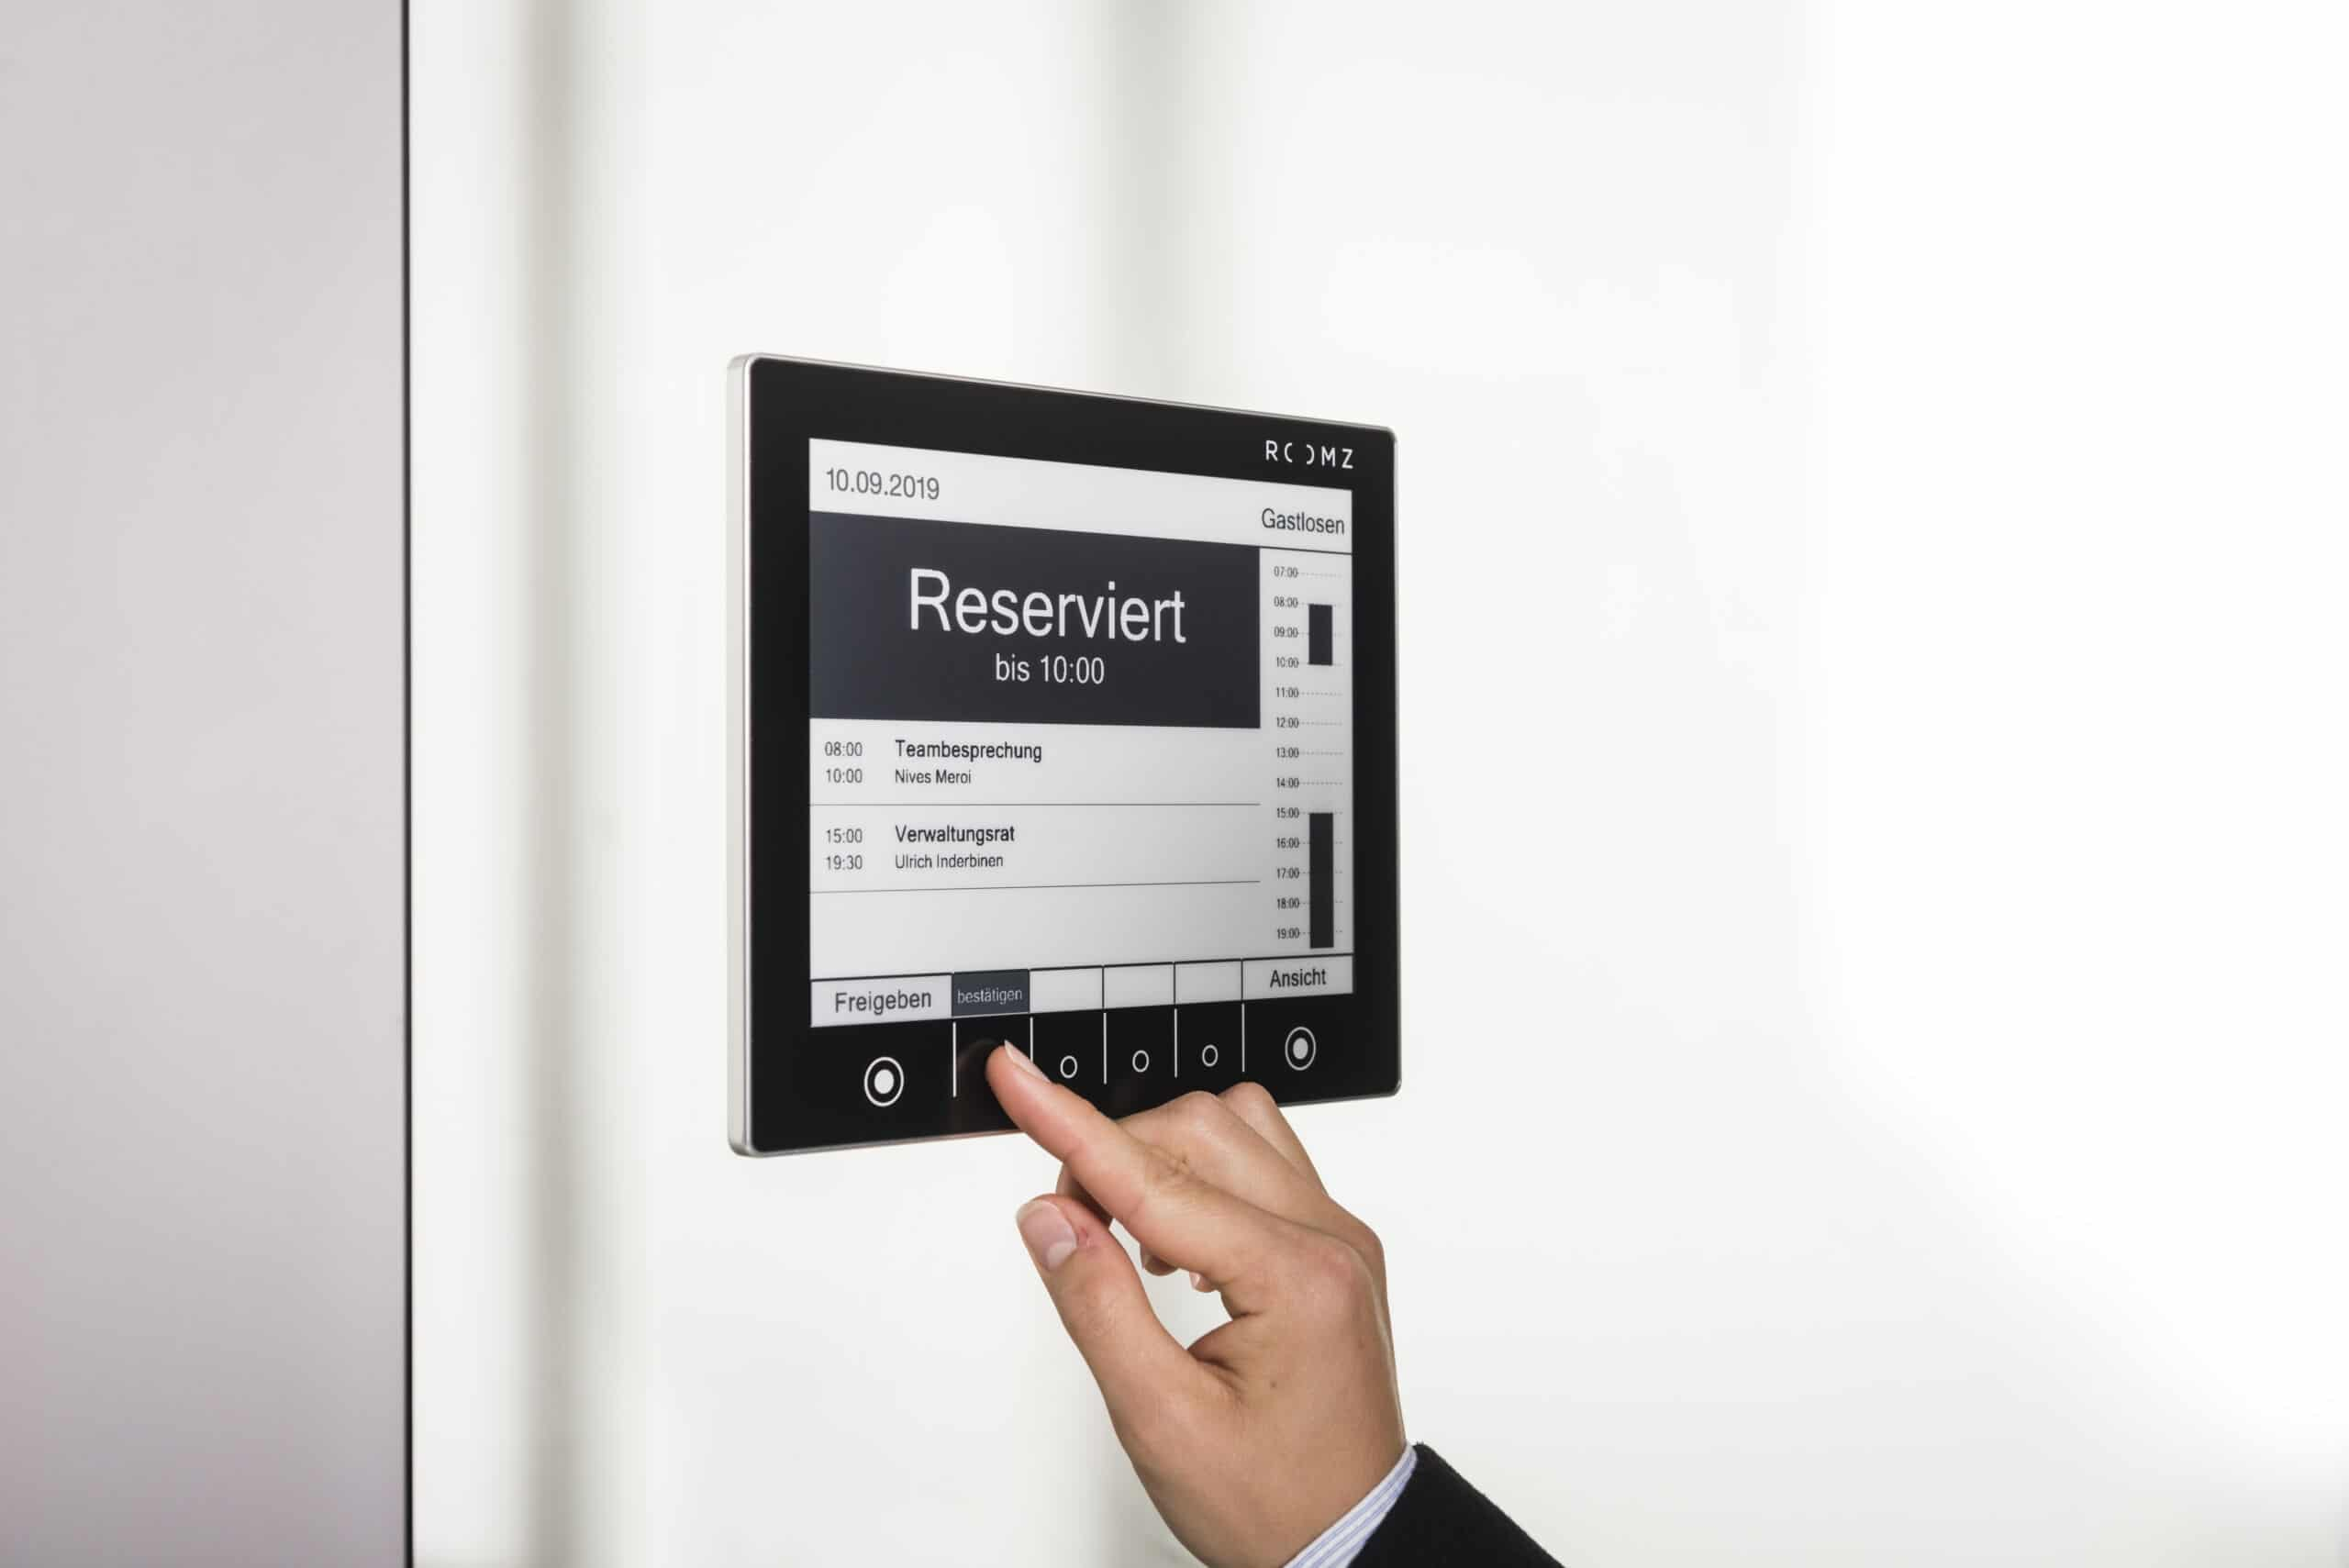 On a ROOMZ display, a booking is made with the touch function.